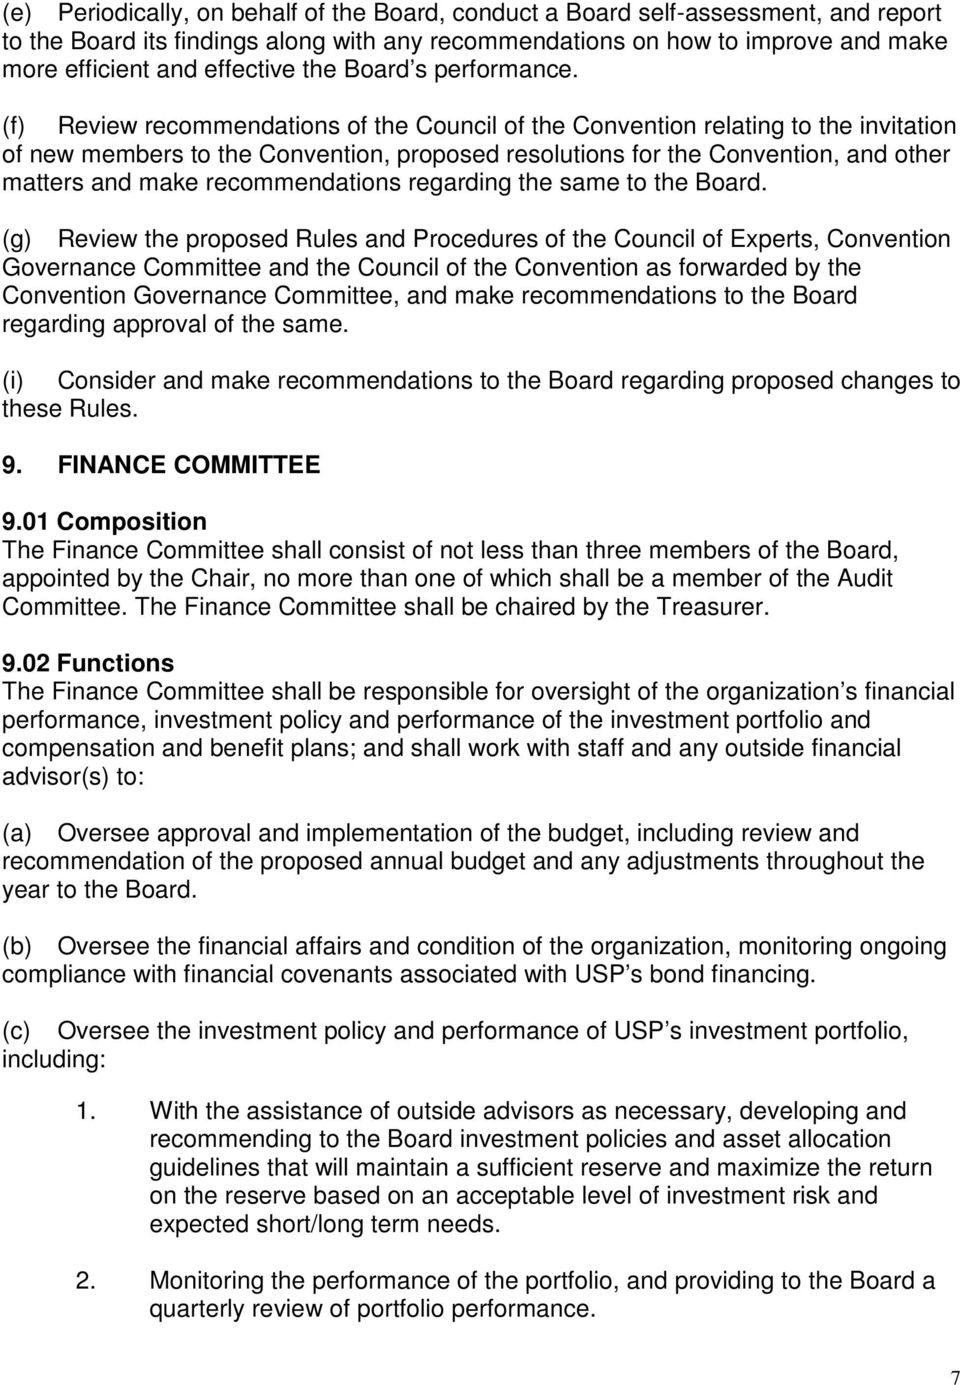 (f) Review recommendations of the Council of the Convention relating to the invitation of new members to the Convention, proposed resolutions for the Convention, and other matters and make